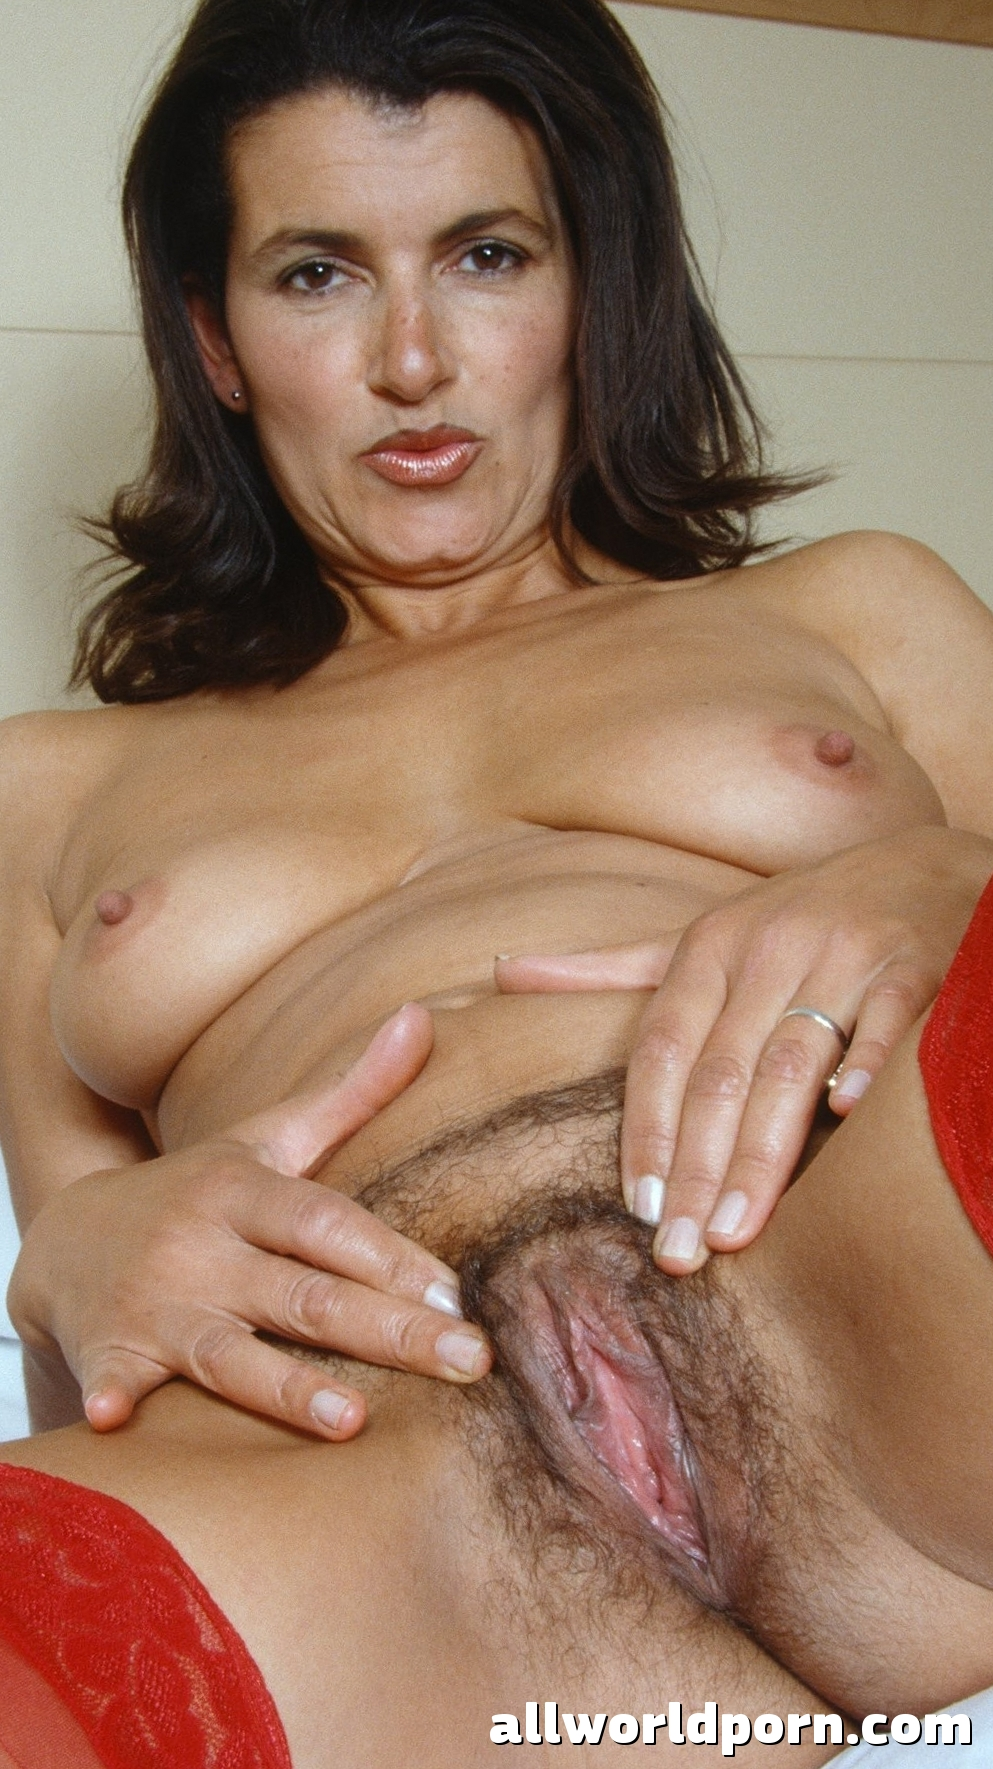 Mature women naked sex pictures